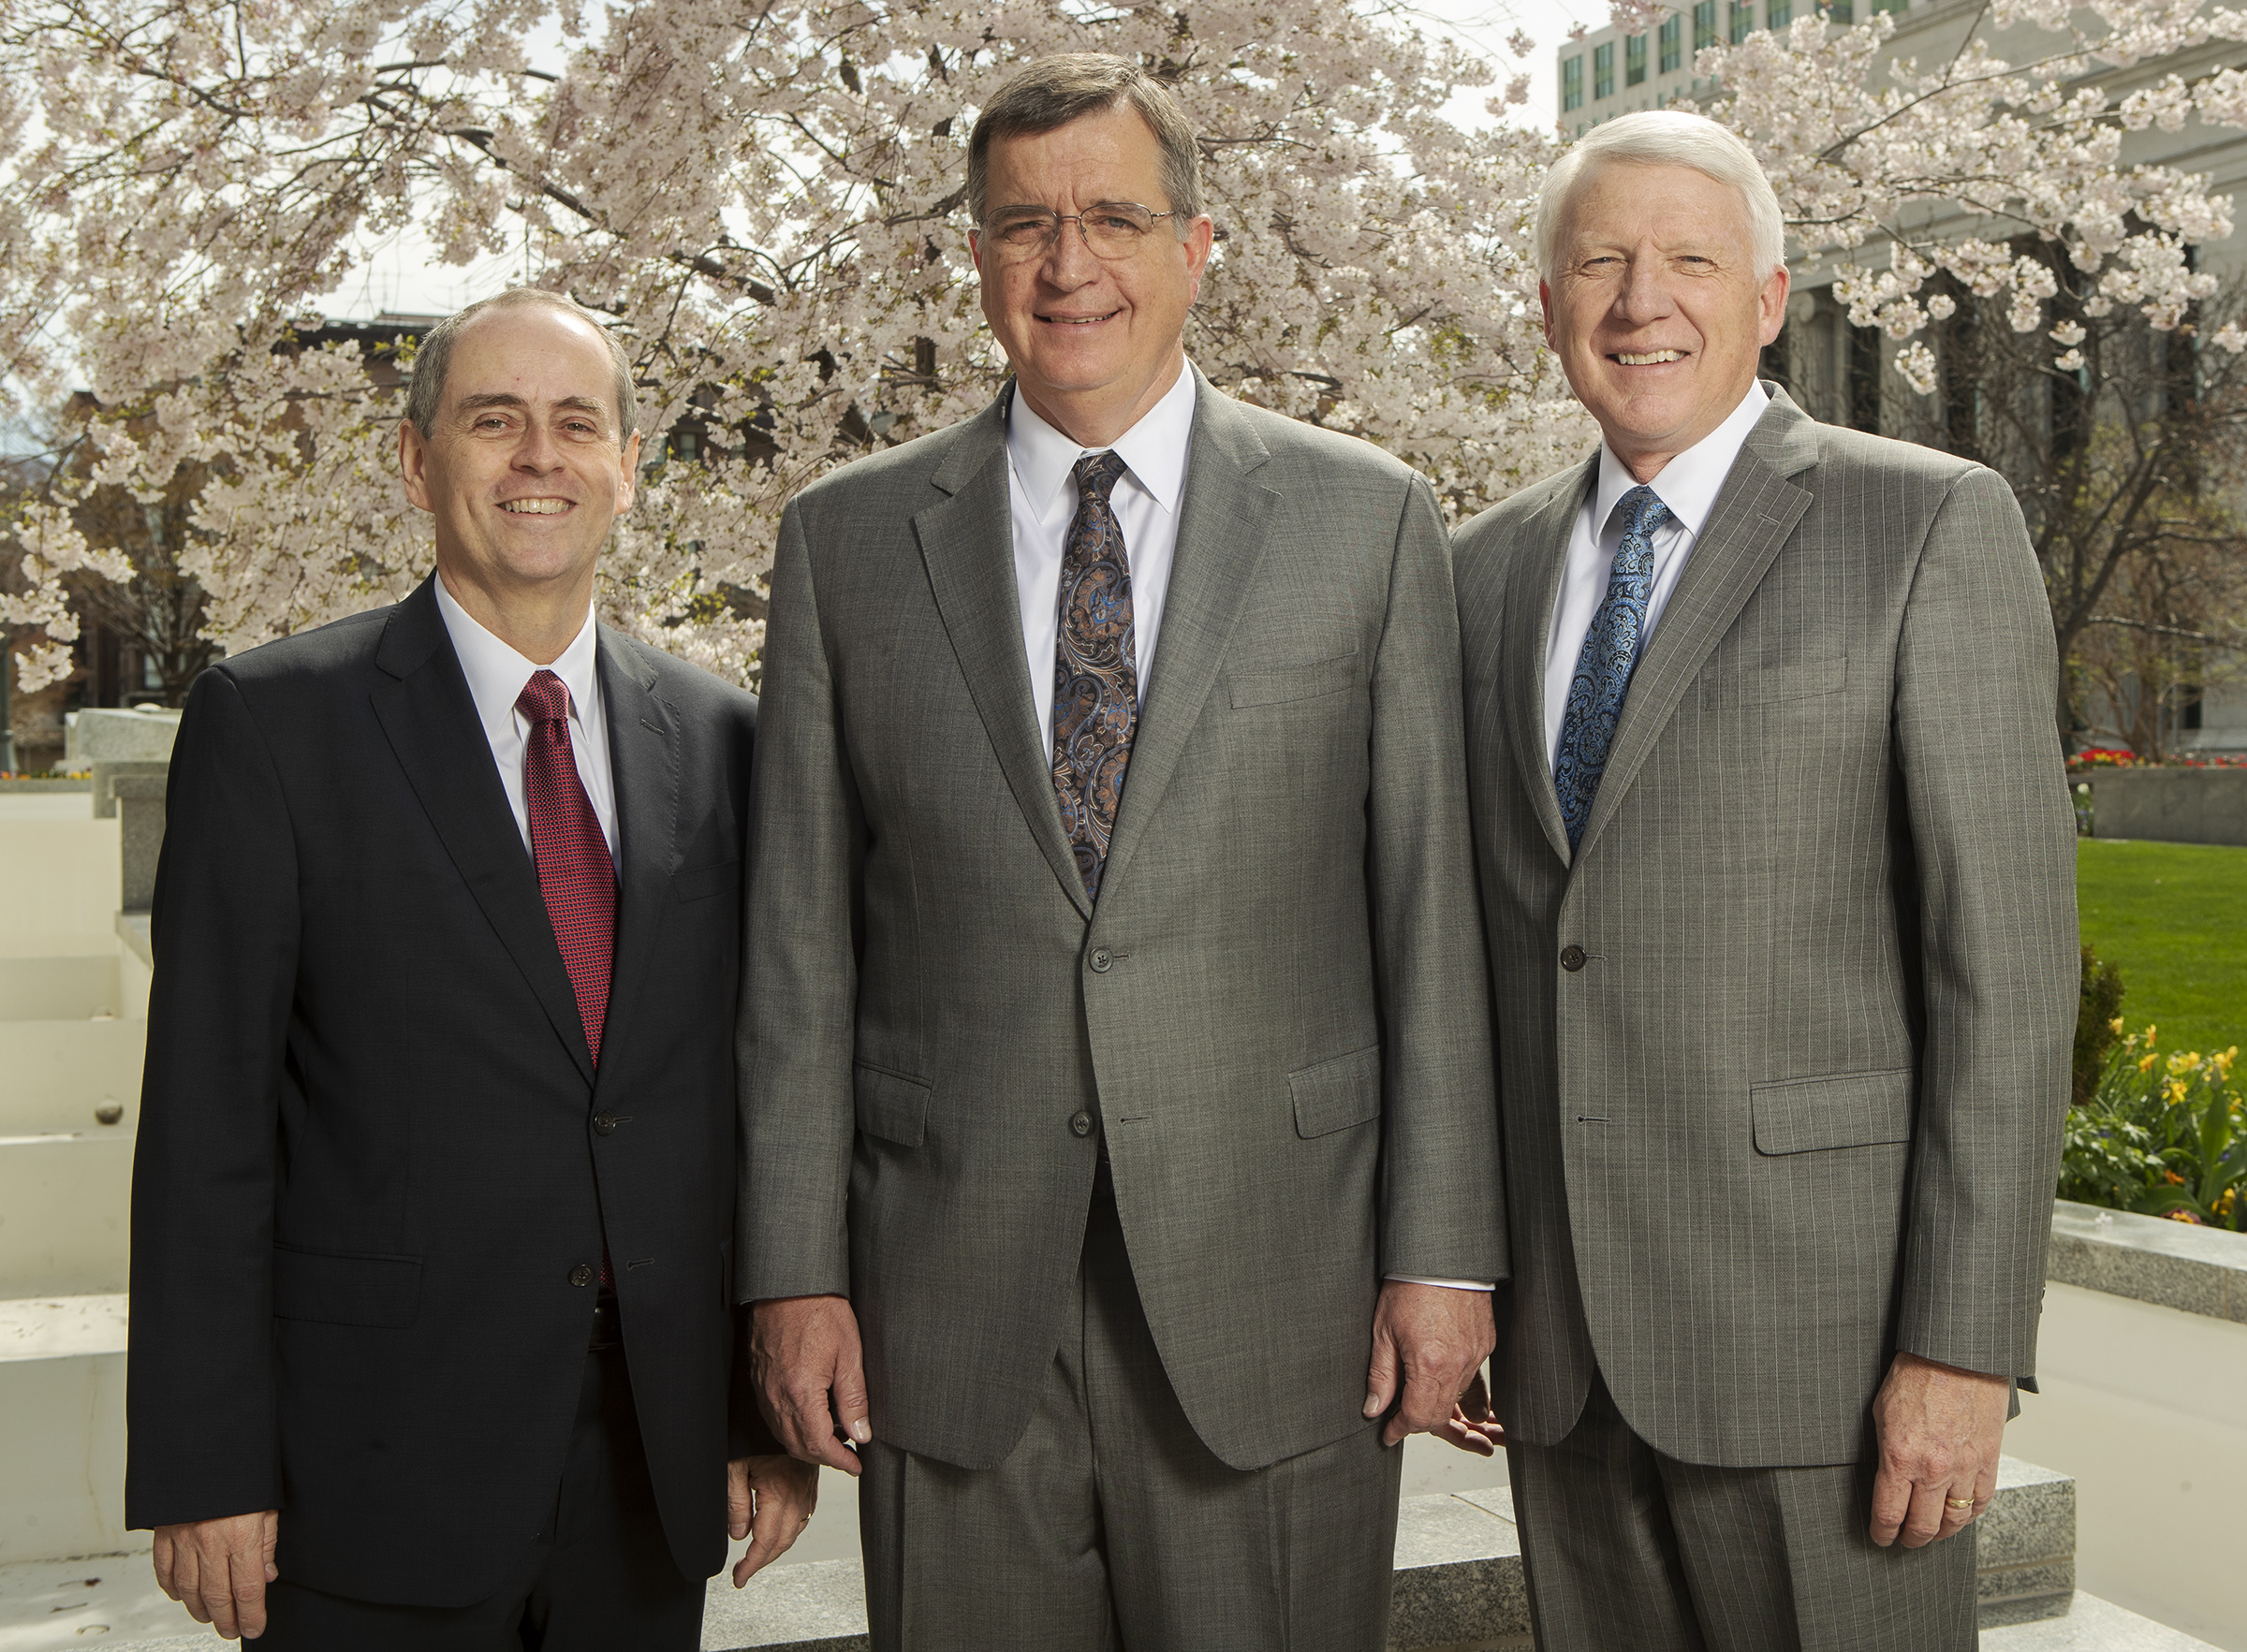 New Sunday School General Presidency, Brother Milton da Rocha Camargo, first counselor, Brother Mark L. Pace, president, and Brother Jan E. Newman, second counselor pose for a photo at the Church Office Building in Salt Lake City on Monday, April 8, 2019.